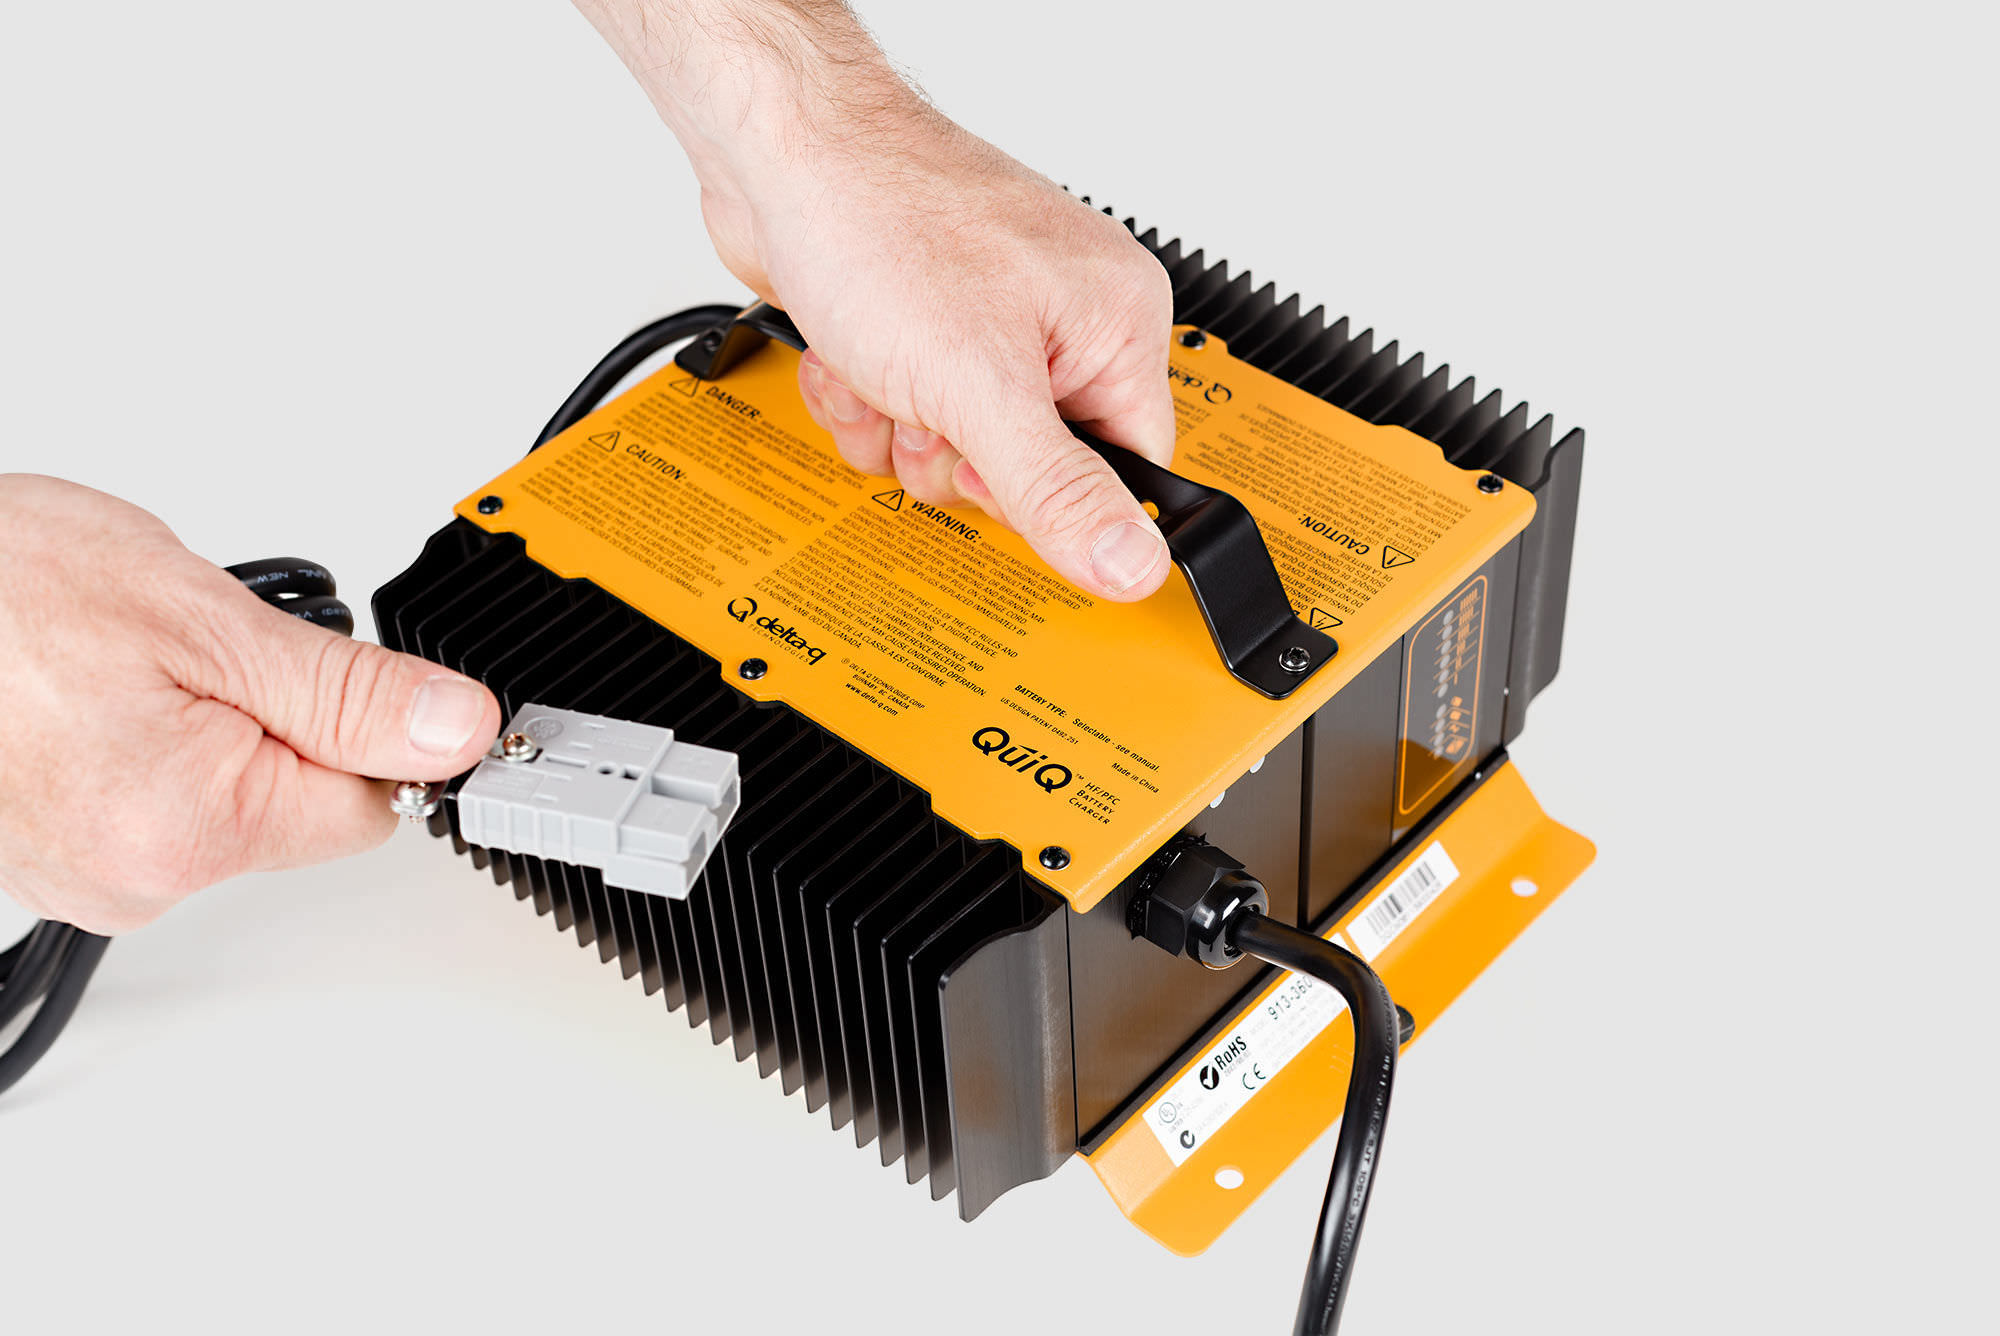 lead-acid battery charger / AGM / lithium-ion / fixed ...